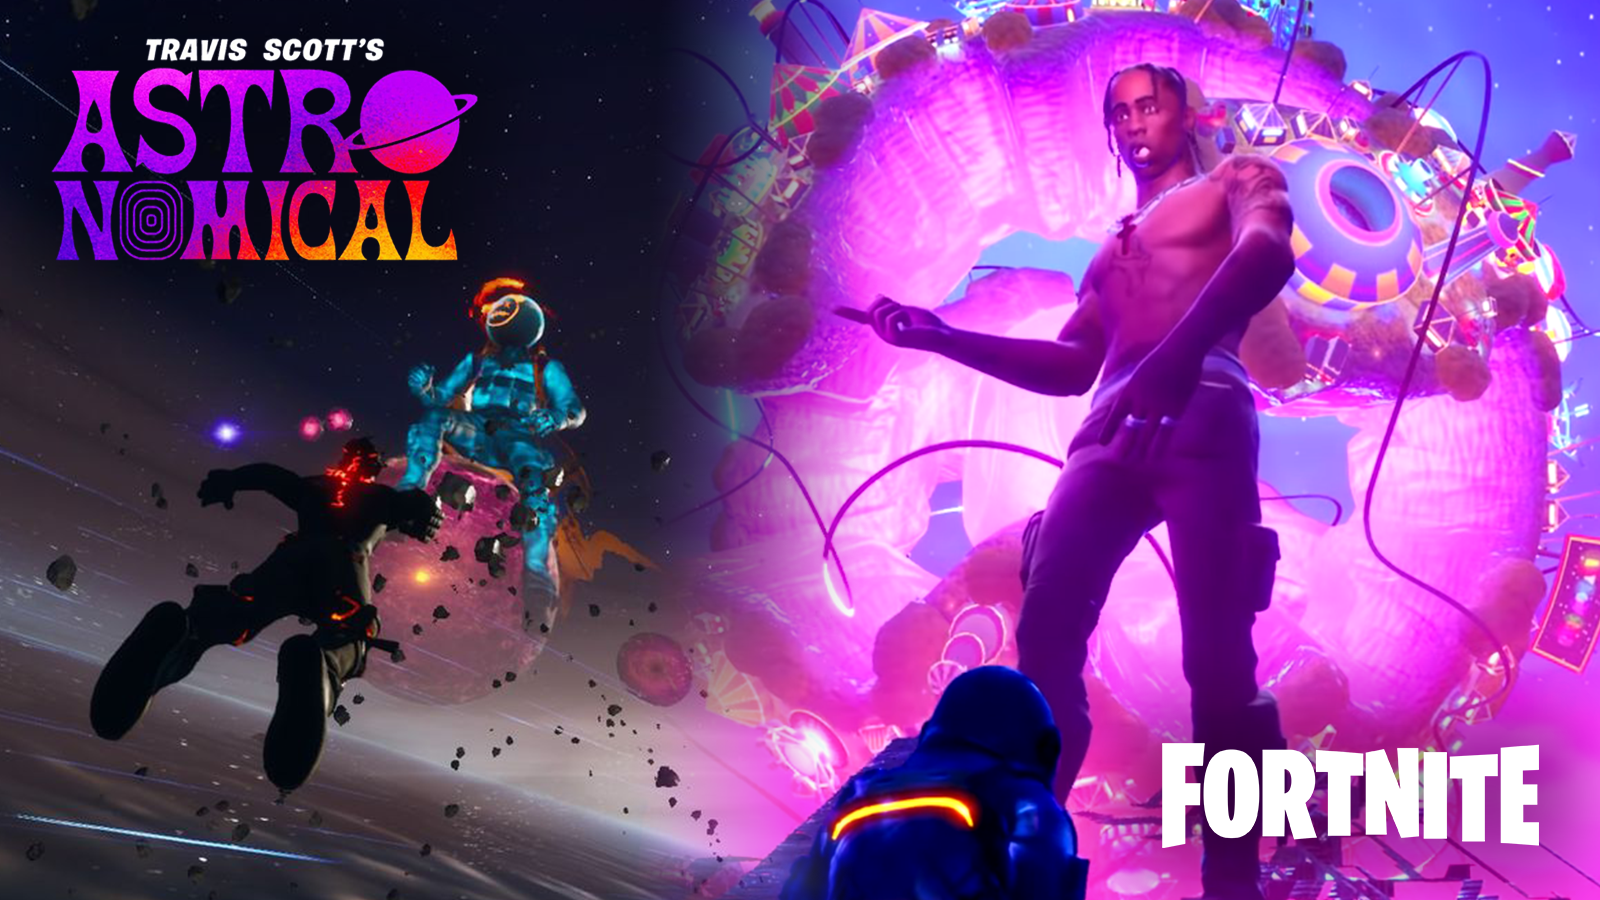 Fortnite Travis Scott